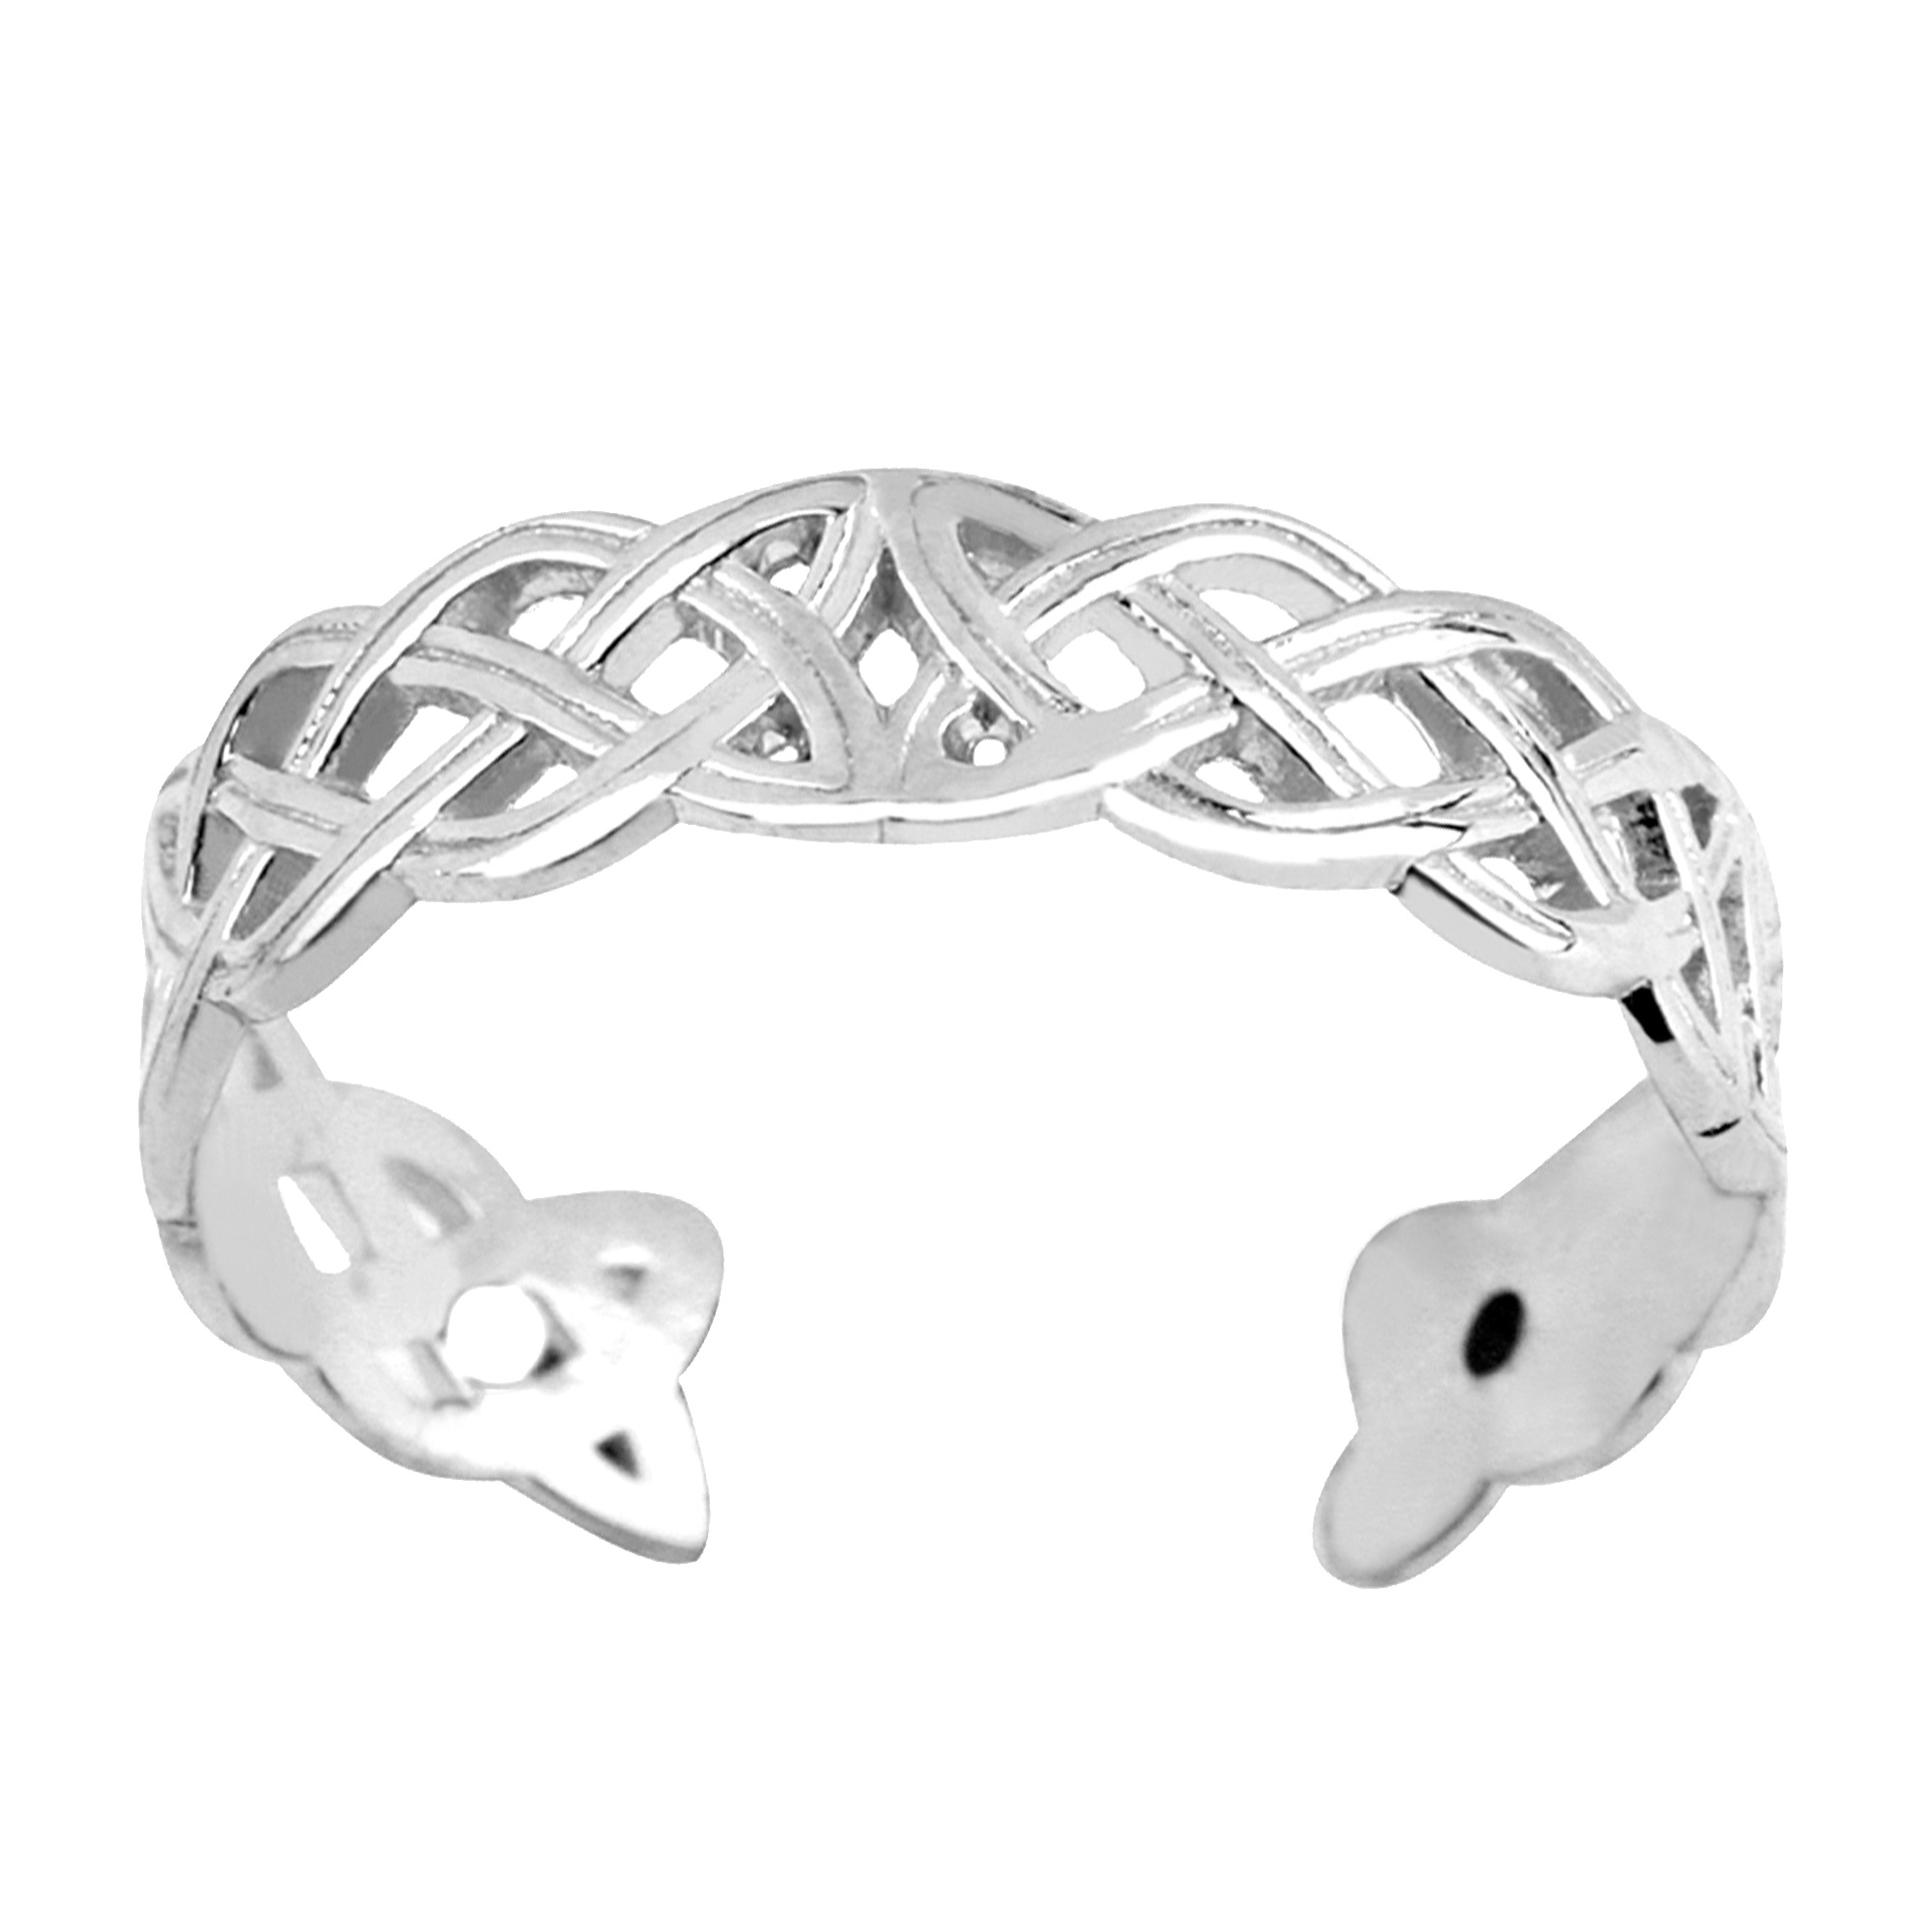 14K White Gold Celtic Knot Weave Design Cuff Style Adjustable Toe Ring Always in style, toe rings make the perfect accessory to dress up your pedicure and add some glitz to your toes. Made with 14K white gold and a distinct Celtic knot weave design, this cuff style adjustable toe ring will make a great addition to anyone's jewelry collection.